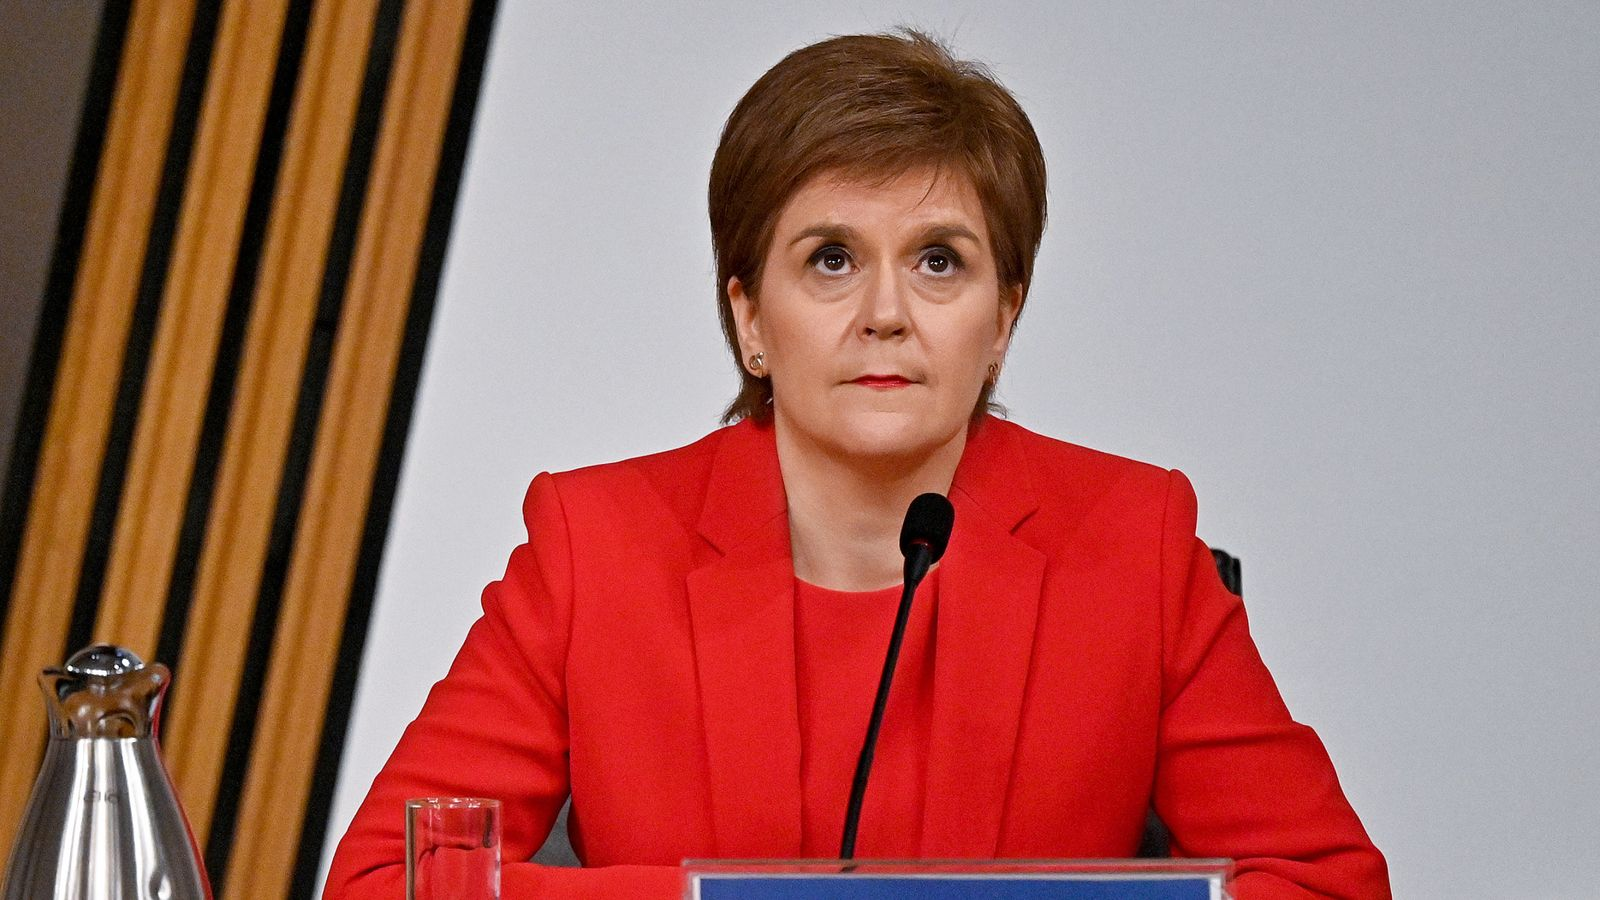 """Nicola Sturgeon in a """"moment you'll never forget"""" when Alex Salmond shows her harassment speech 